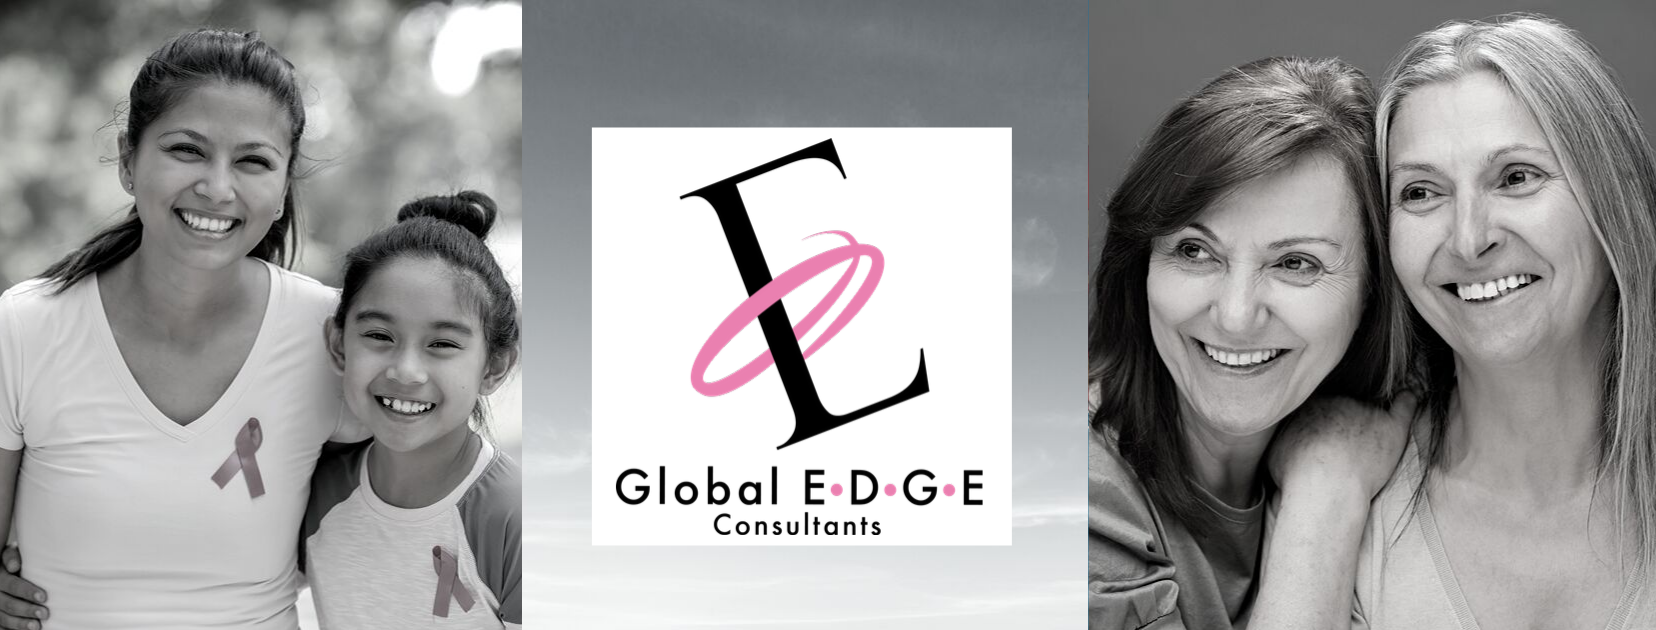 The Global Edge Supports Breast Cancer Awareness Month